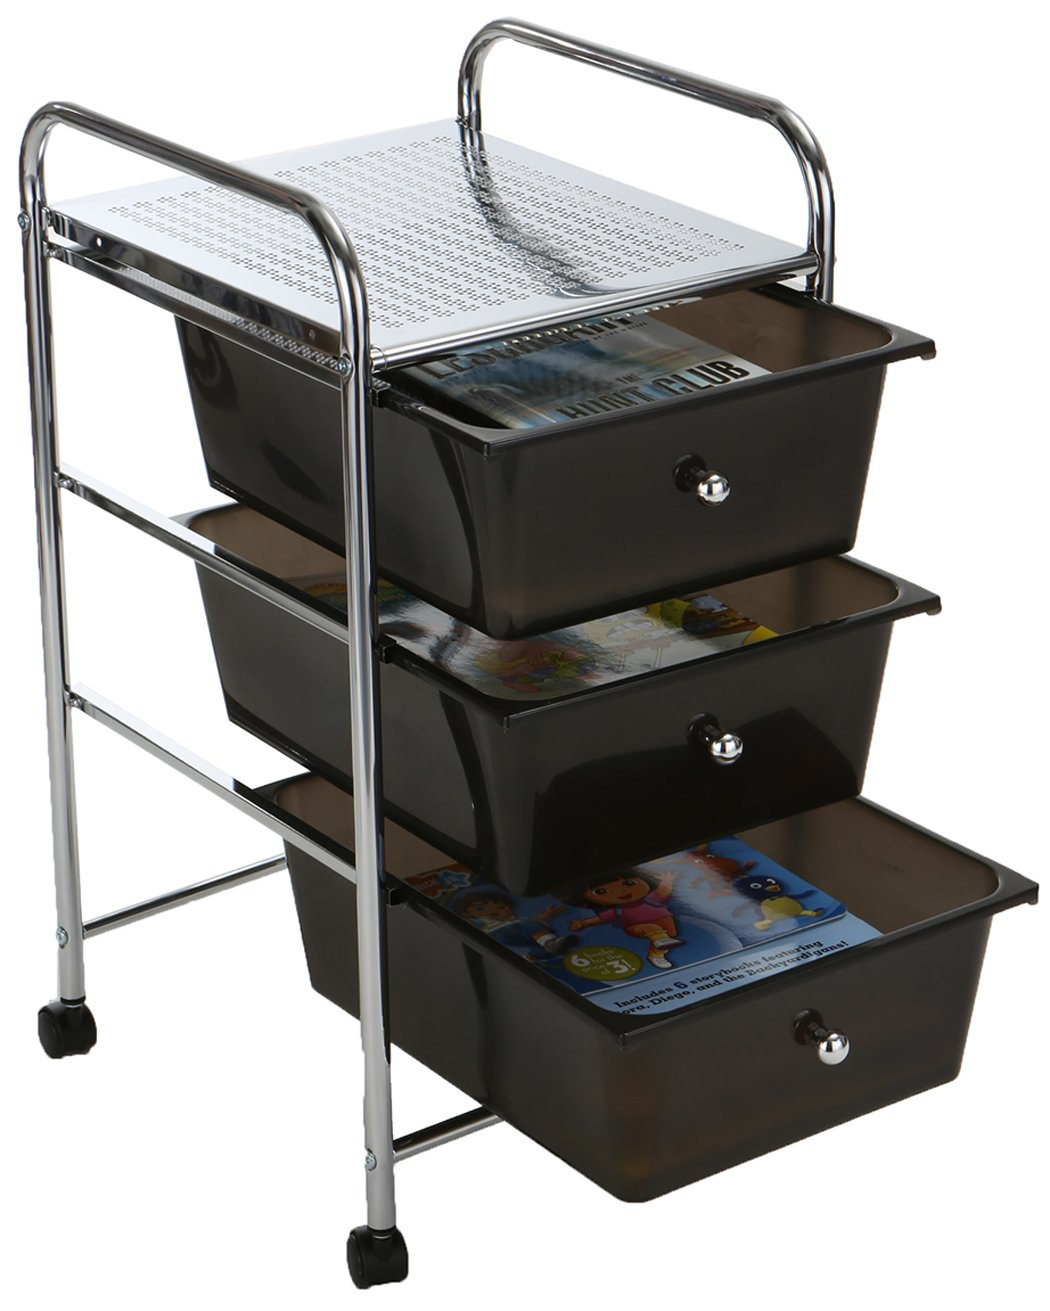 Mind Reader 3 Drawer Rolling Storage Cart and Organizer, Silver with Black Drawers by Mind Reader